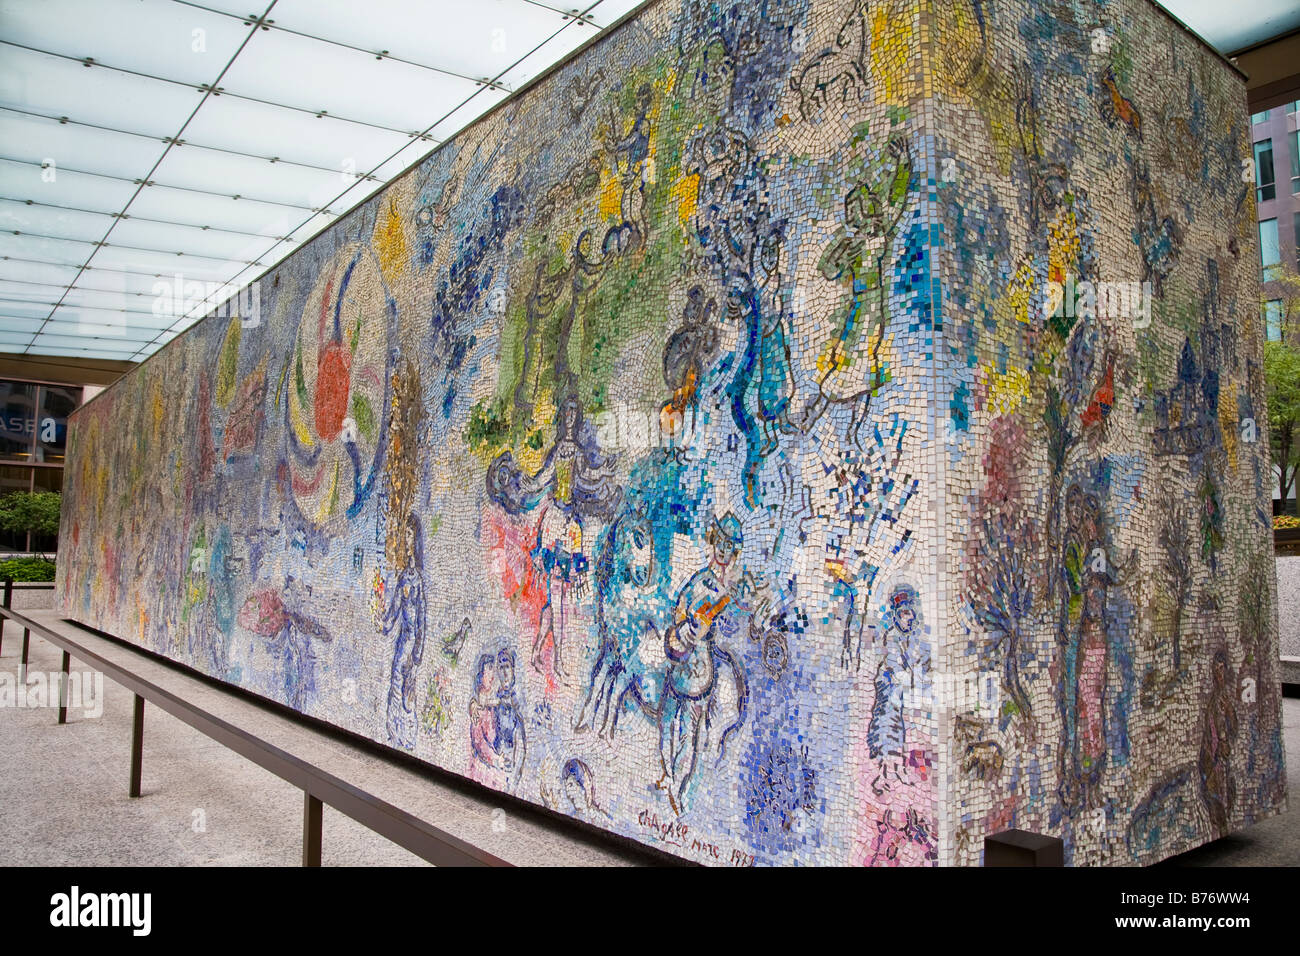 Marc Chagall Mural In Downtown Chicago Il Stock Photo